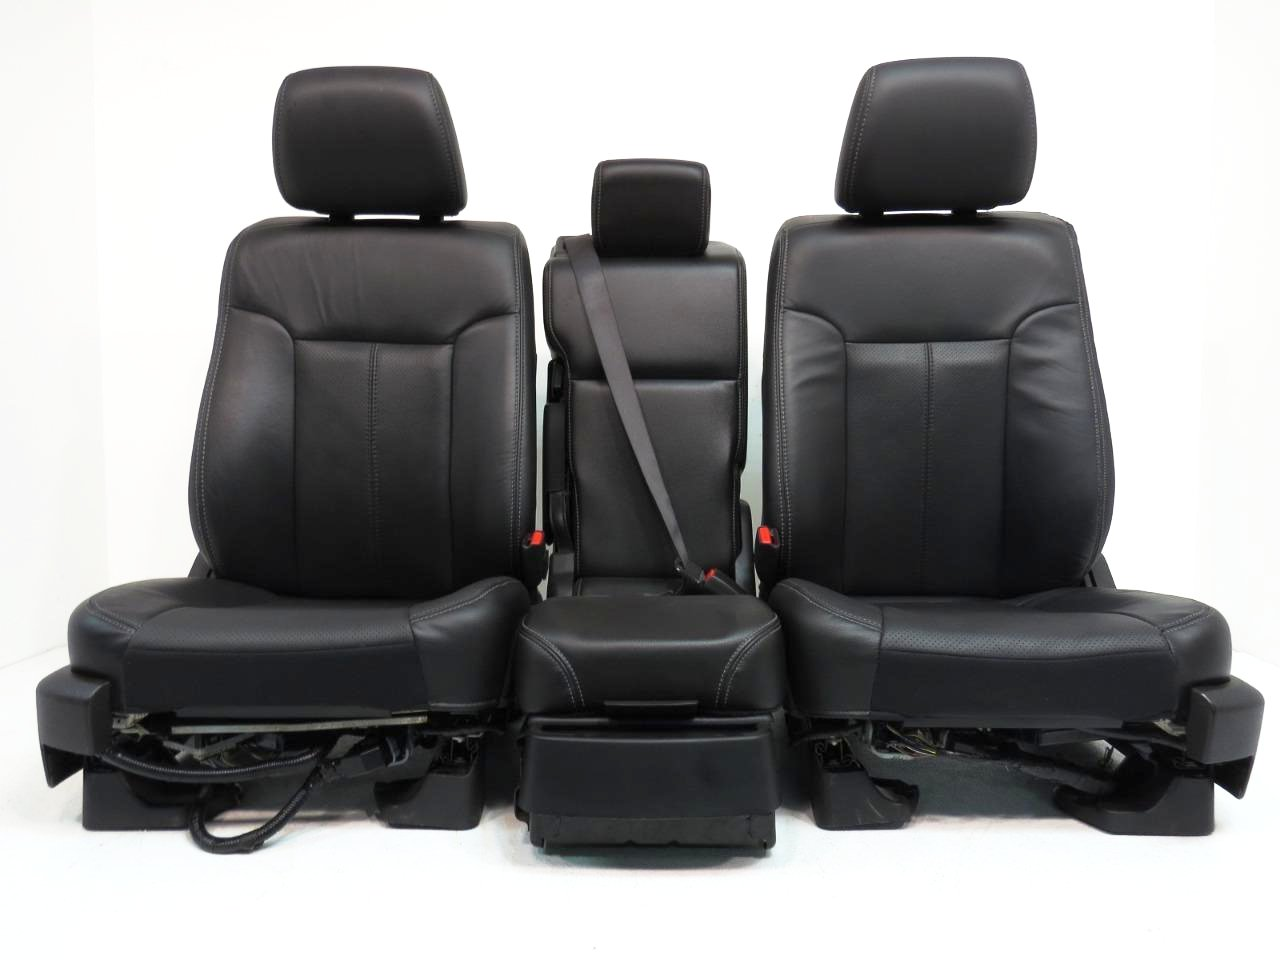 Replacement Ford F150 Front Leather Seats Jump Seat Console 2009 2010 2011 2012 2013 2014 Stock J1714